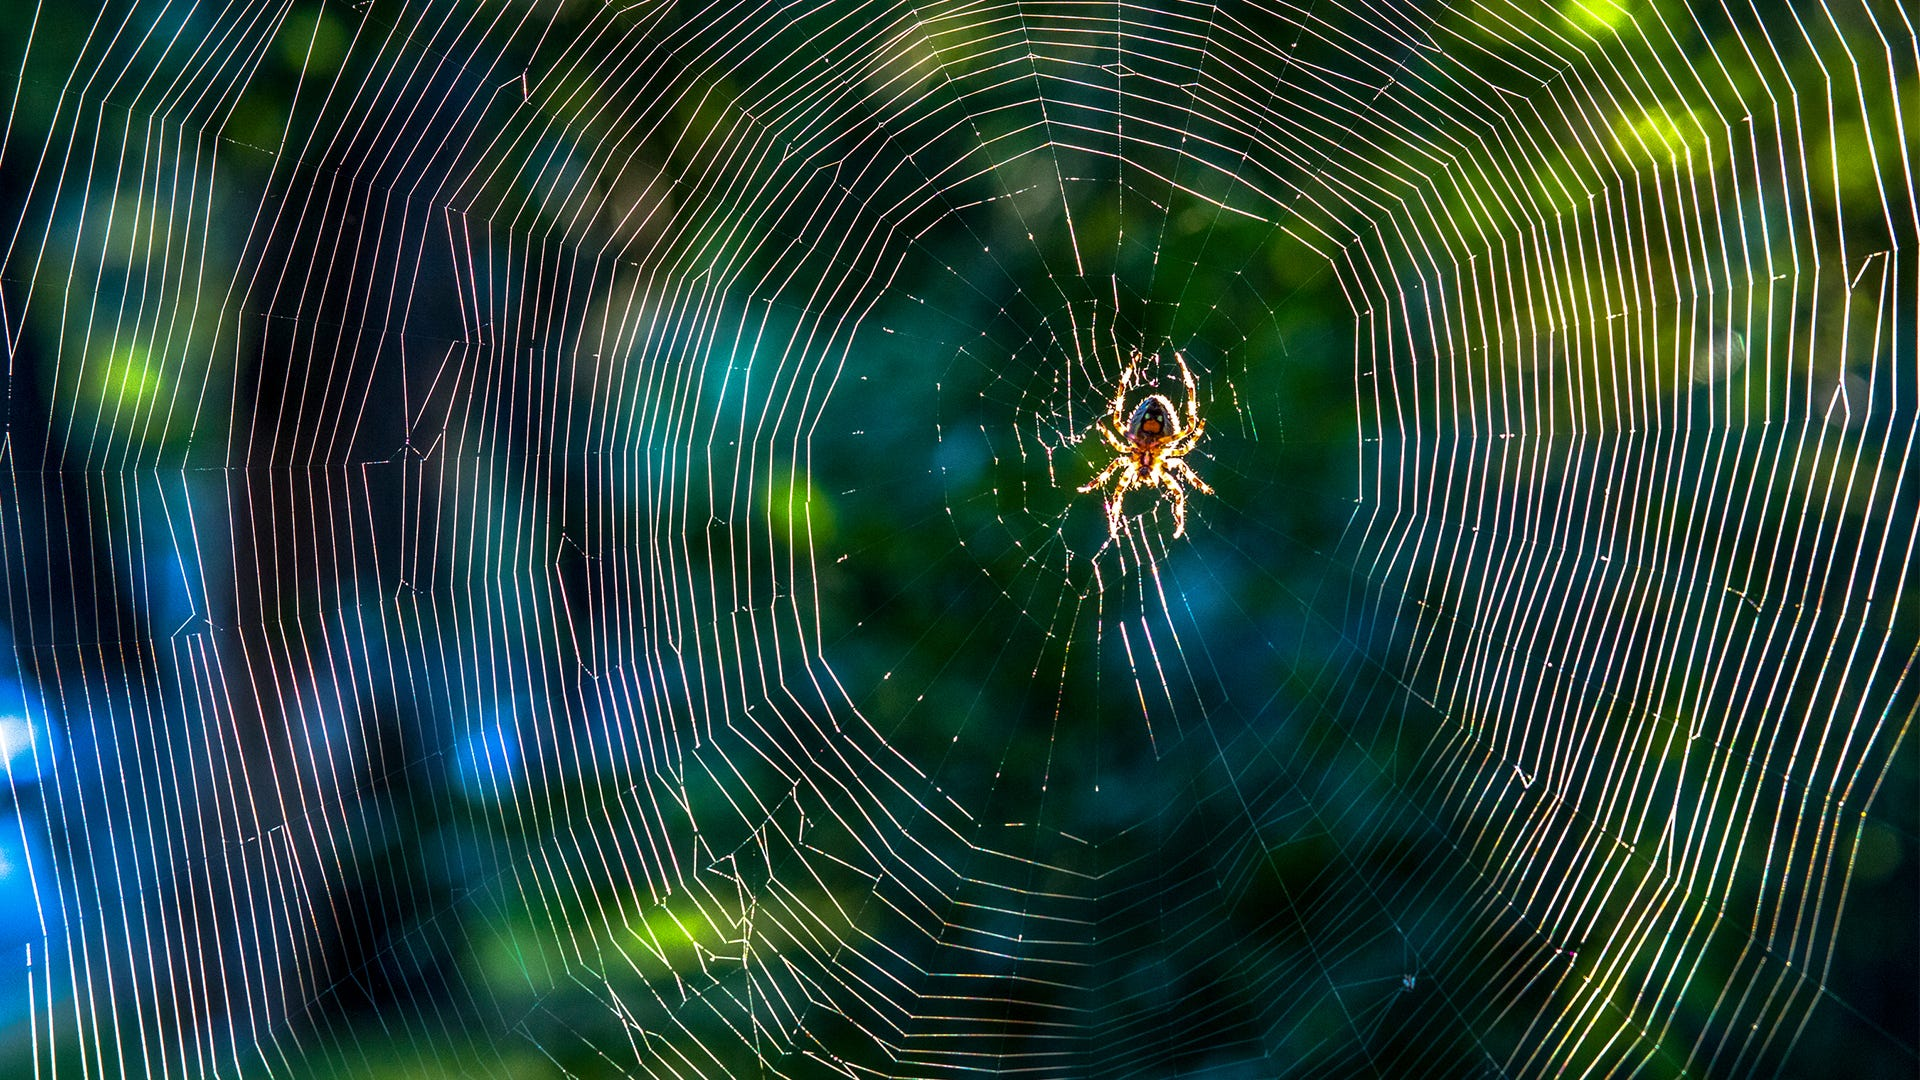 How to ID Spiders by Their Webs